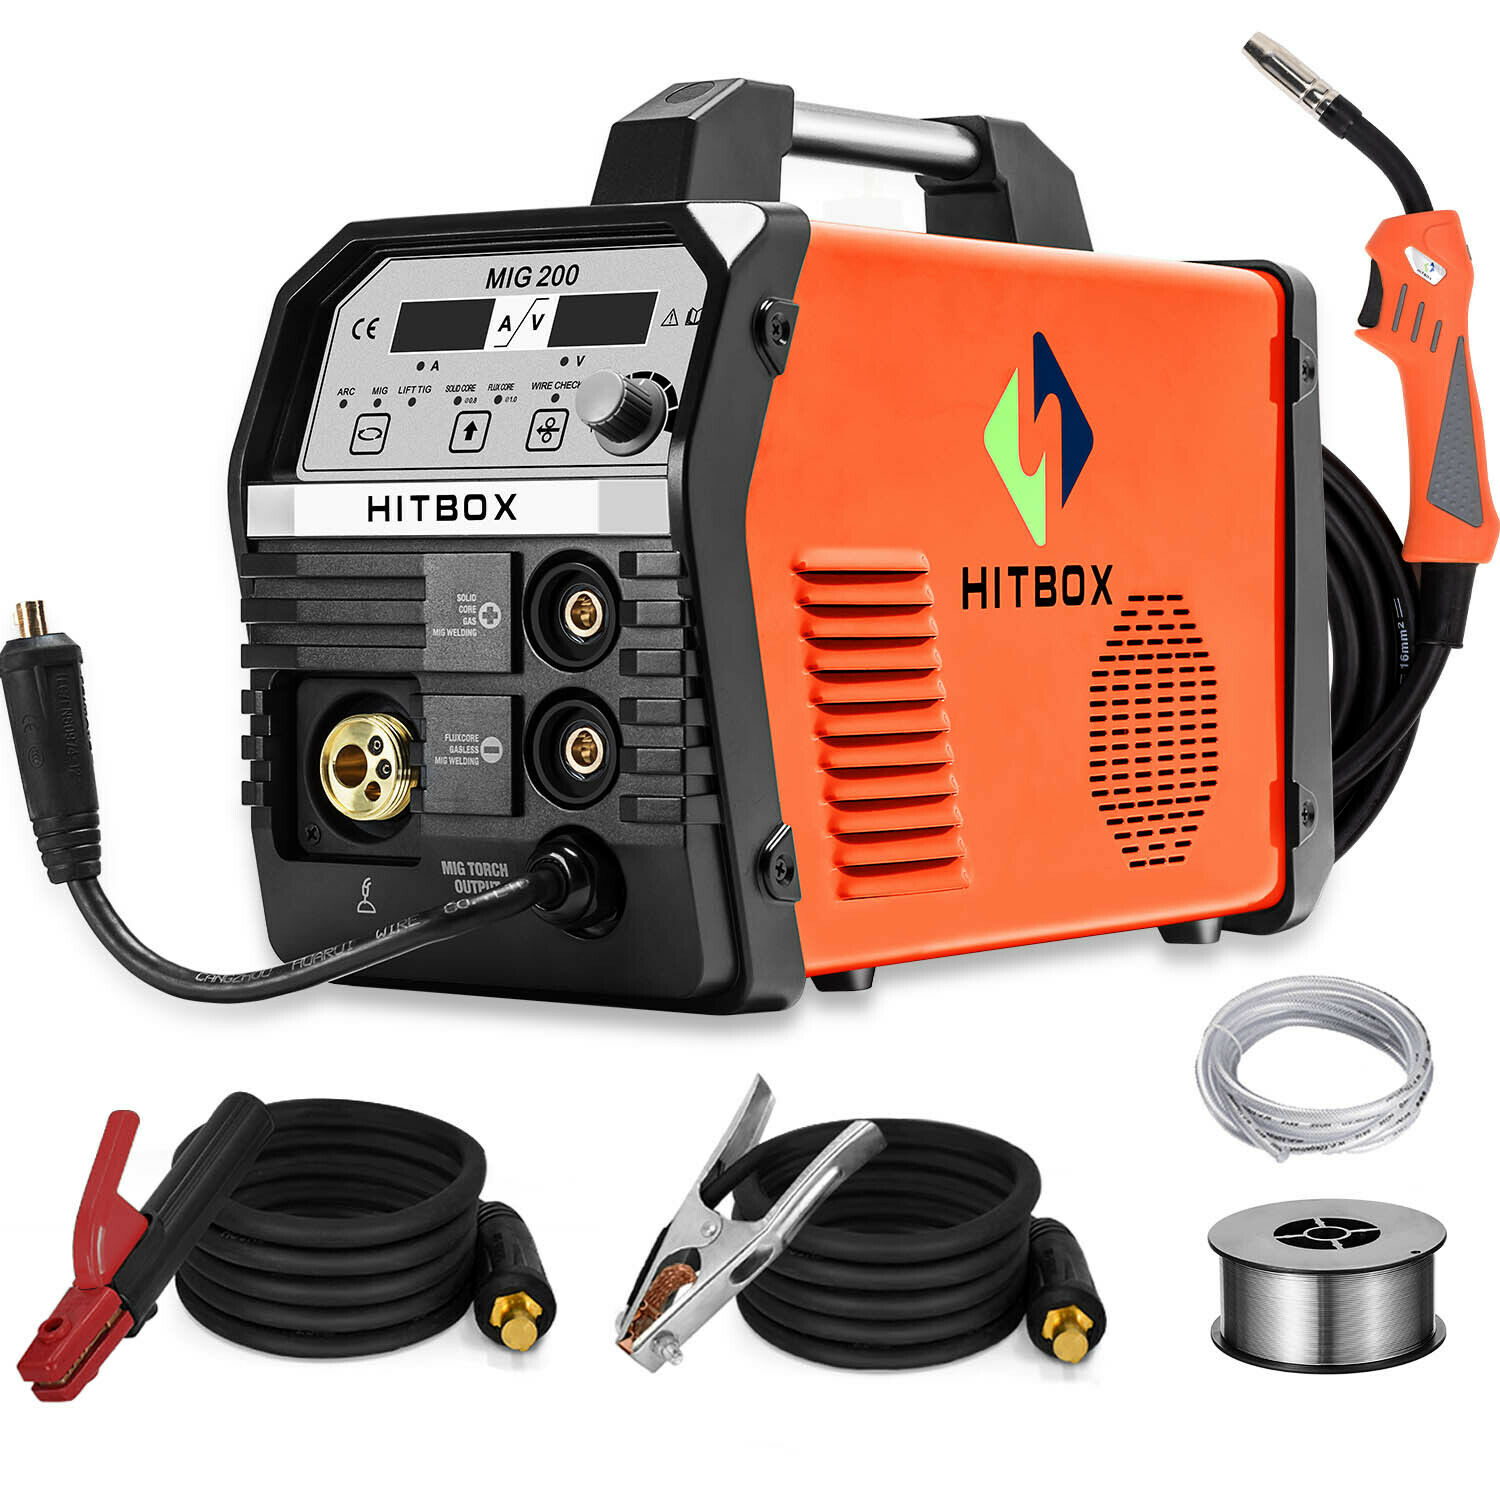 HITBOX 4IN1 200A MIG Welding Machine Gas Gasless Stick ARC Lift TIG MIG Welder. Buy it now for 279.99